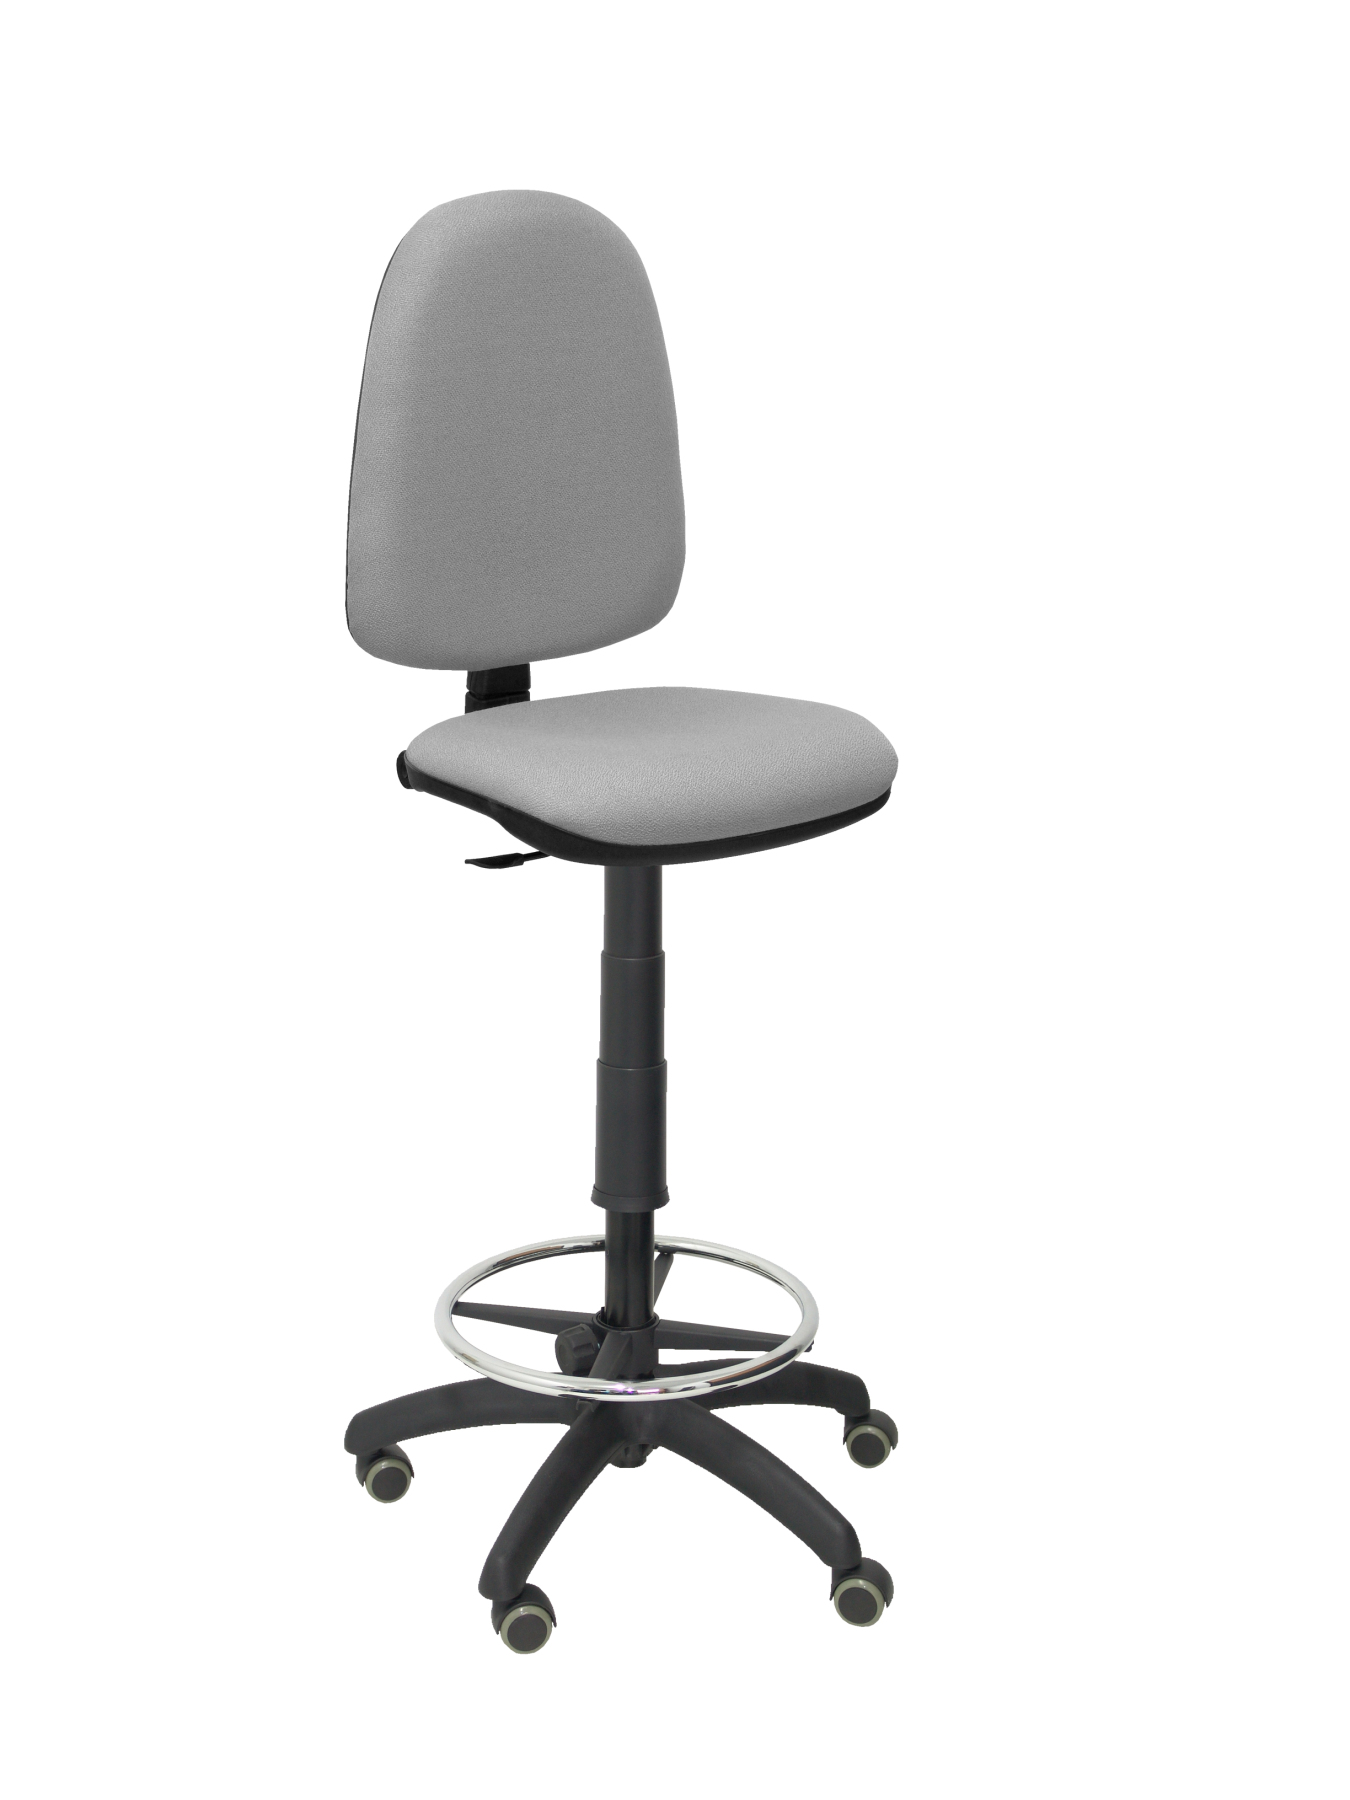 Stool Ergonomic With Permanent Contact's House Mechanism, Dimmable In High Altitude, Hoop Foot Pegs & Wheels Parquet ASI